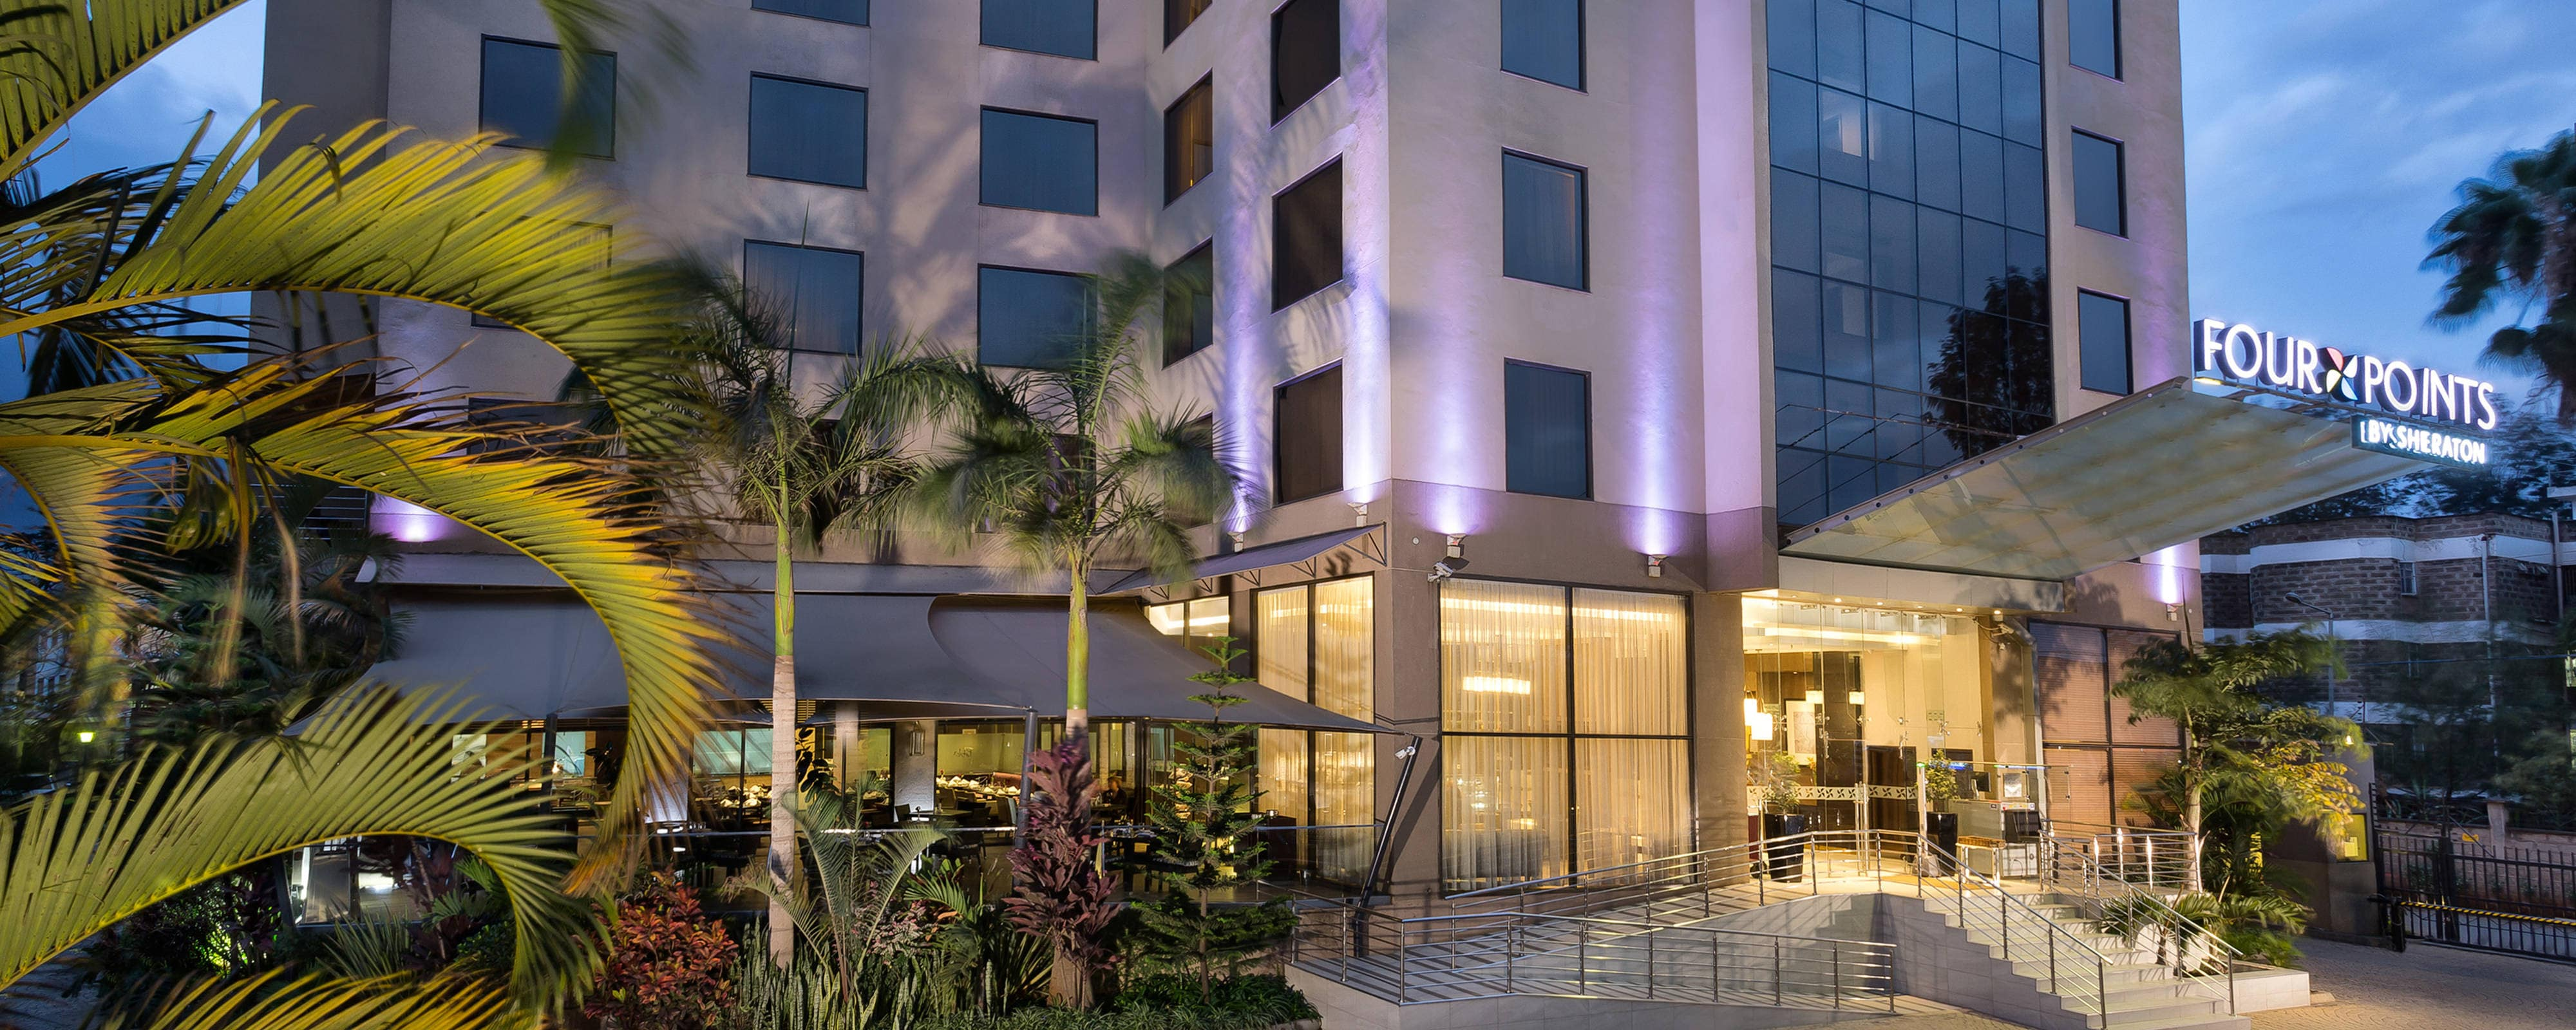 How to Get to Four Points by Sheraton Nairobi Hurlingham